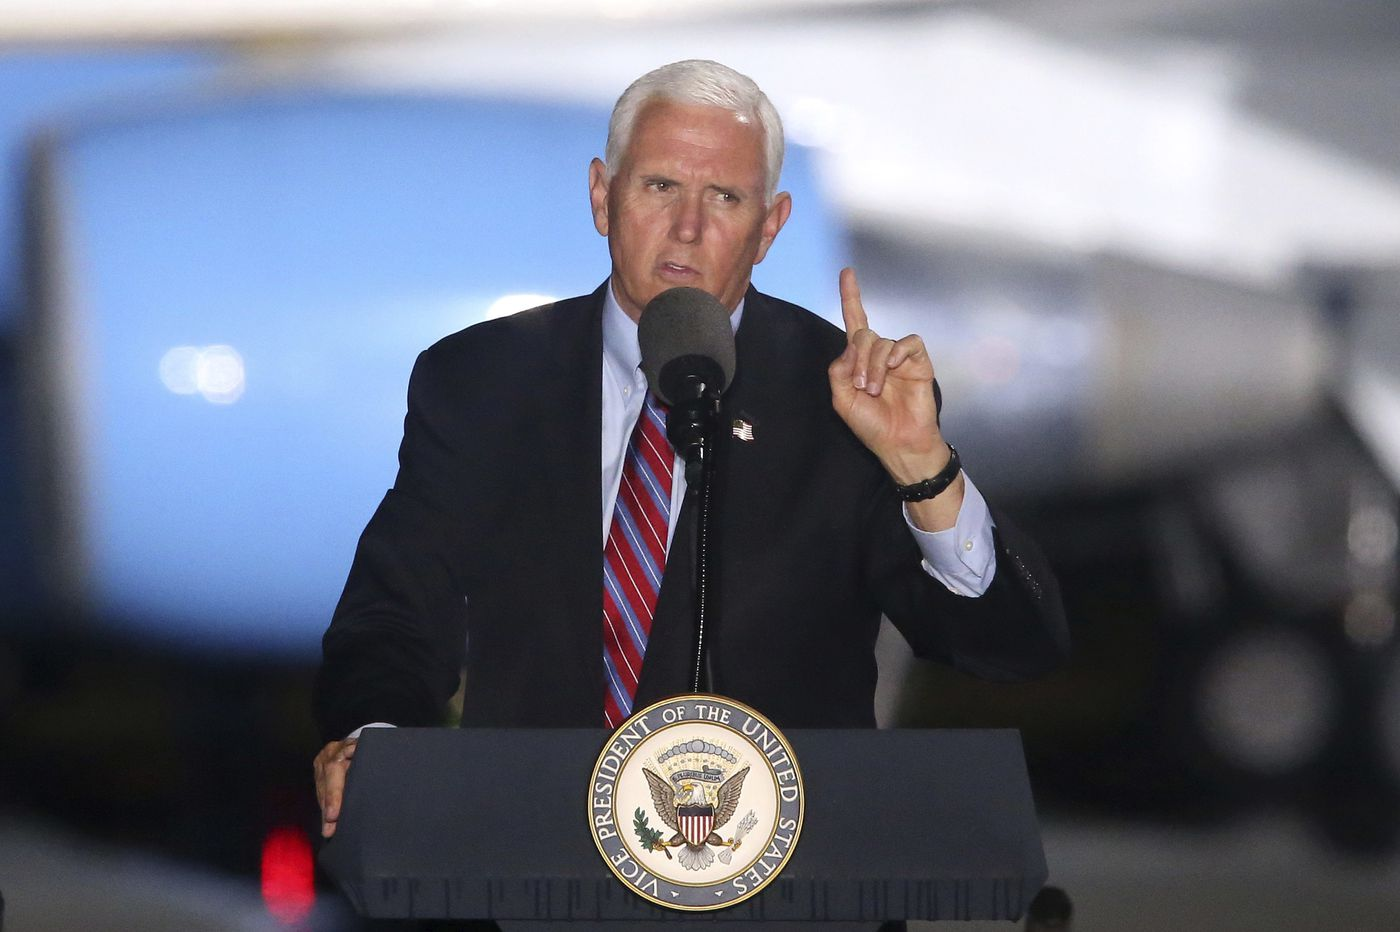 Trump aide says 'we're not going to control the pandemic' as outbreak spreads among Pence's staff